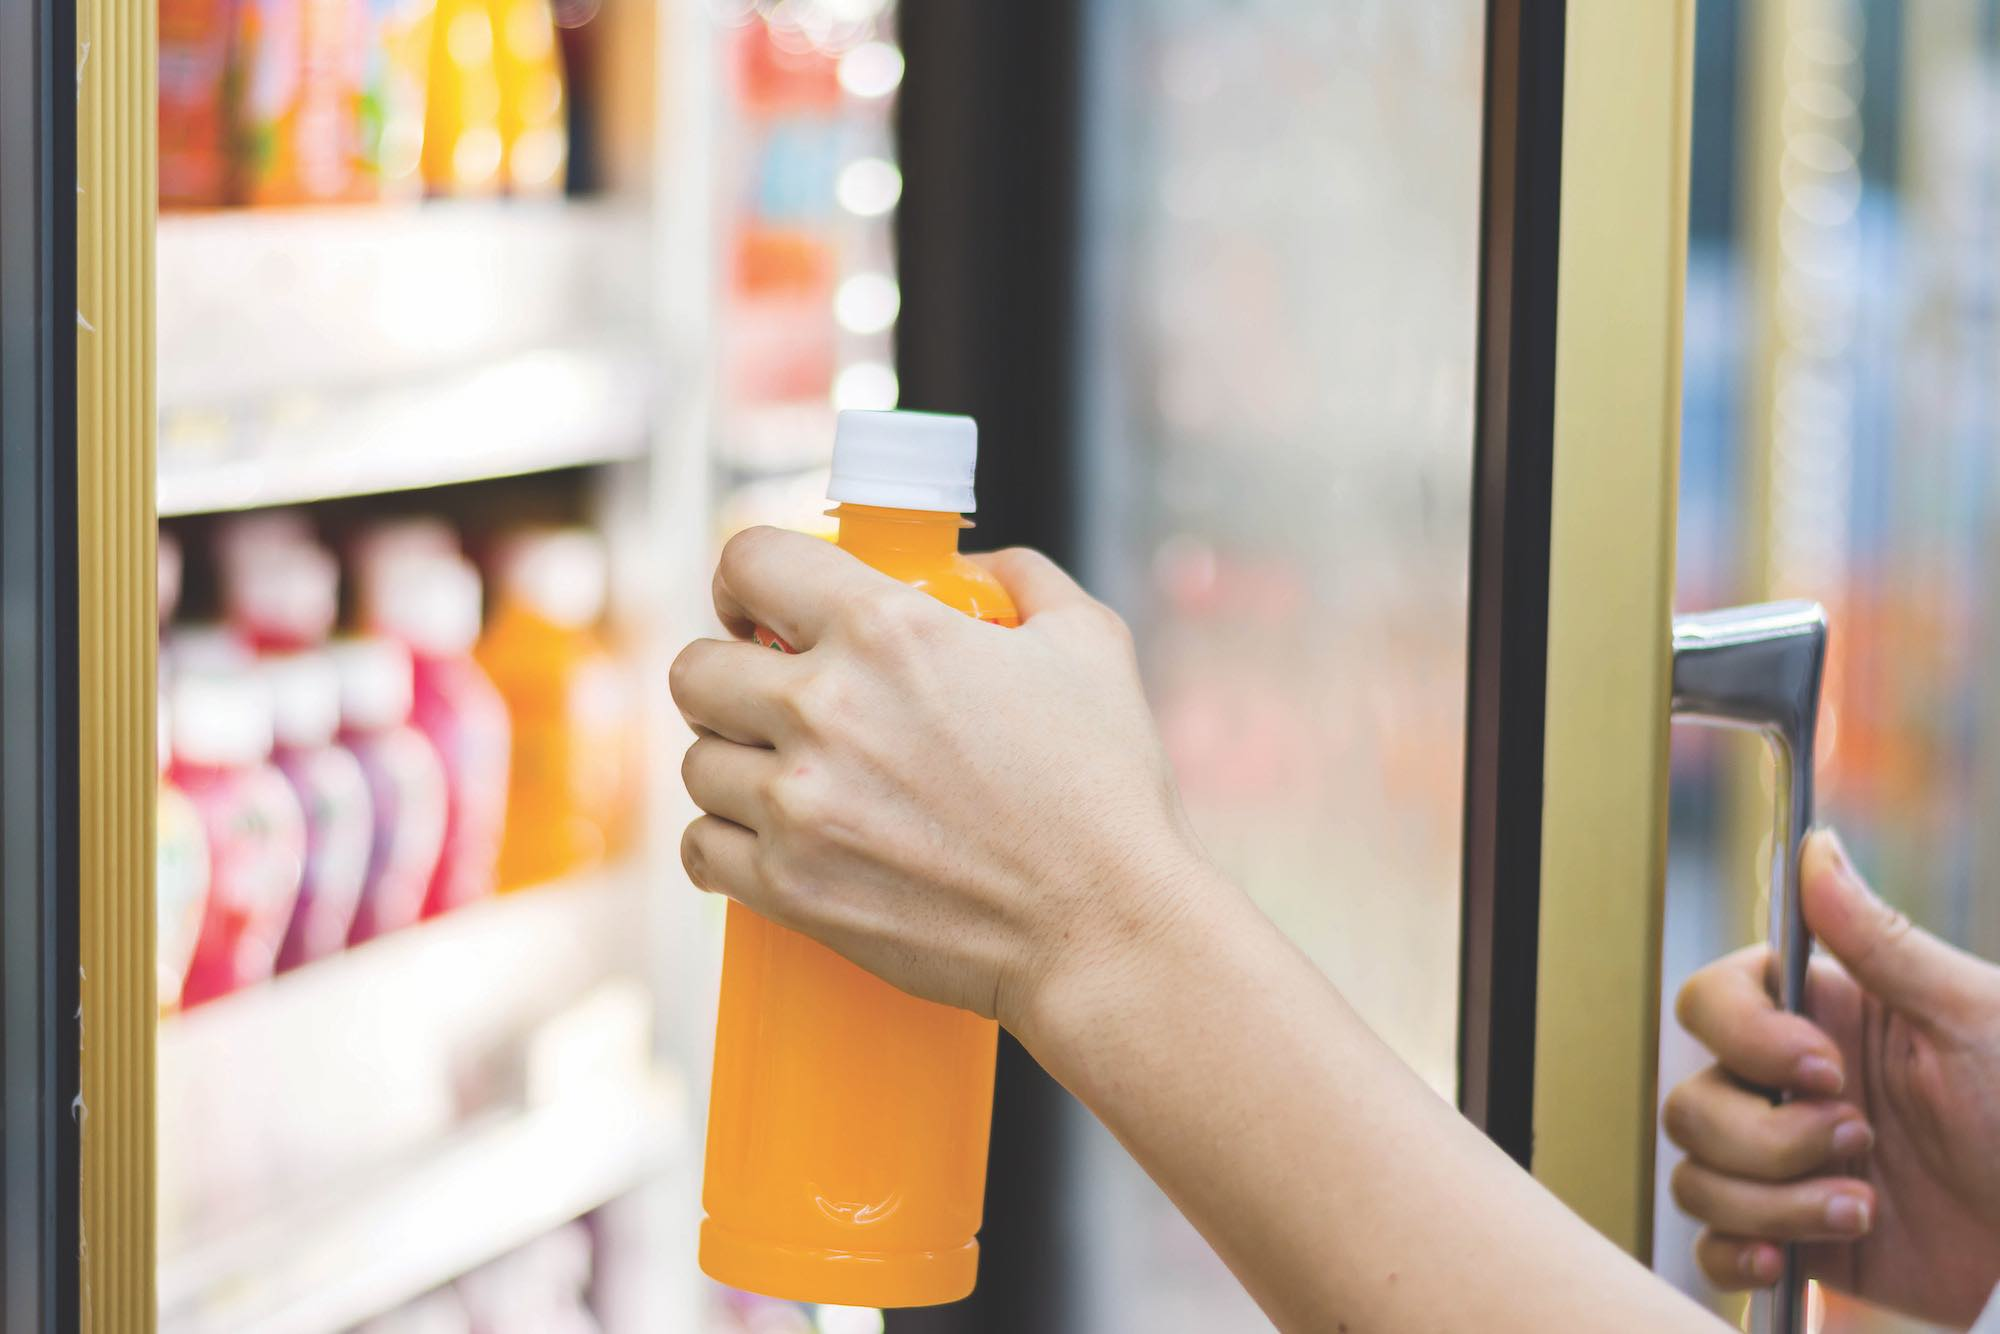 woman's hand open convenience store refrigerator shelves and pick product